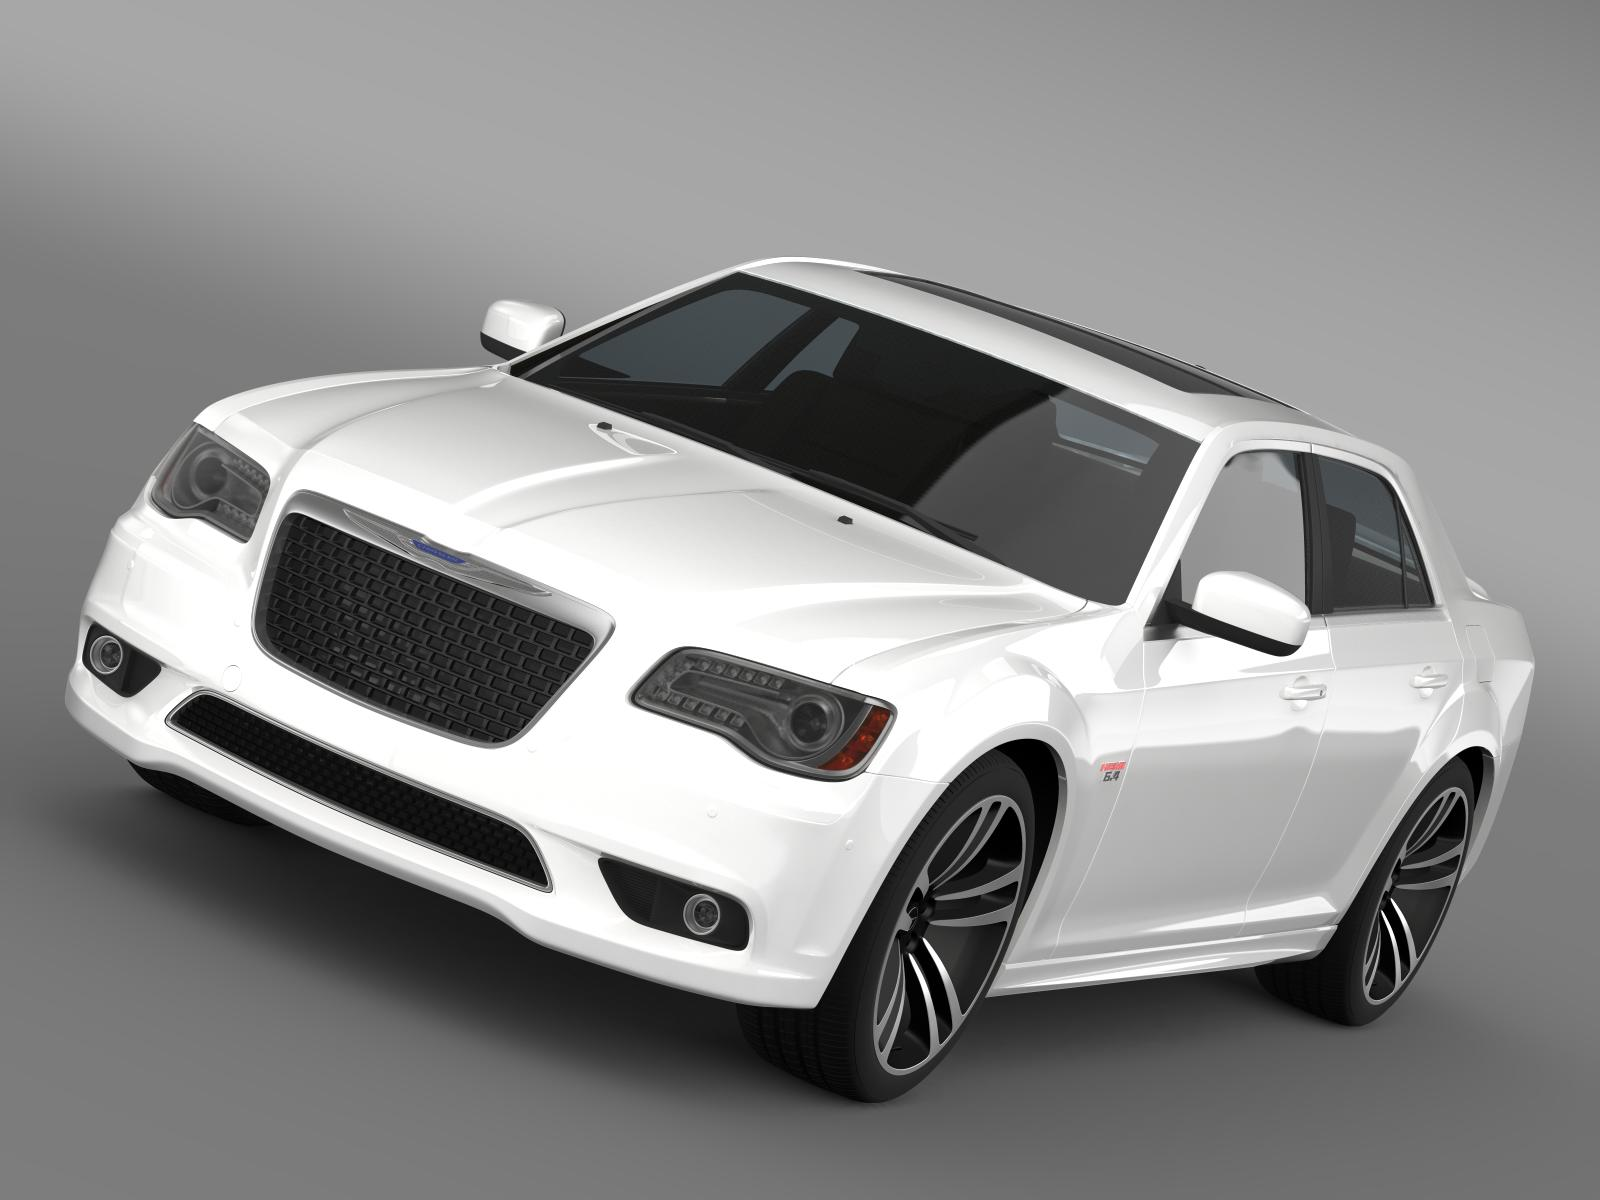 chrysler 300 srt8 core 2013 3d model 3ds max fbx c4d lwo ma mb hrc xsi obj 208016